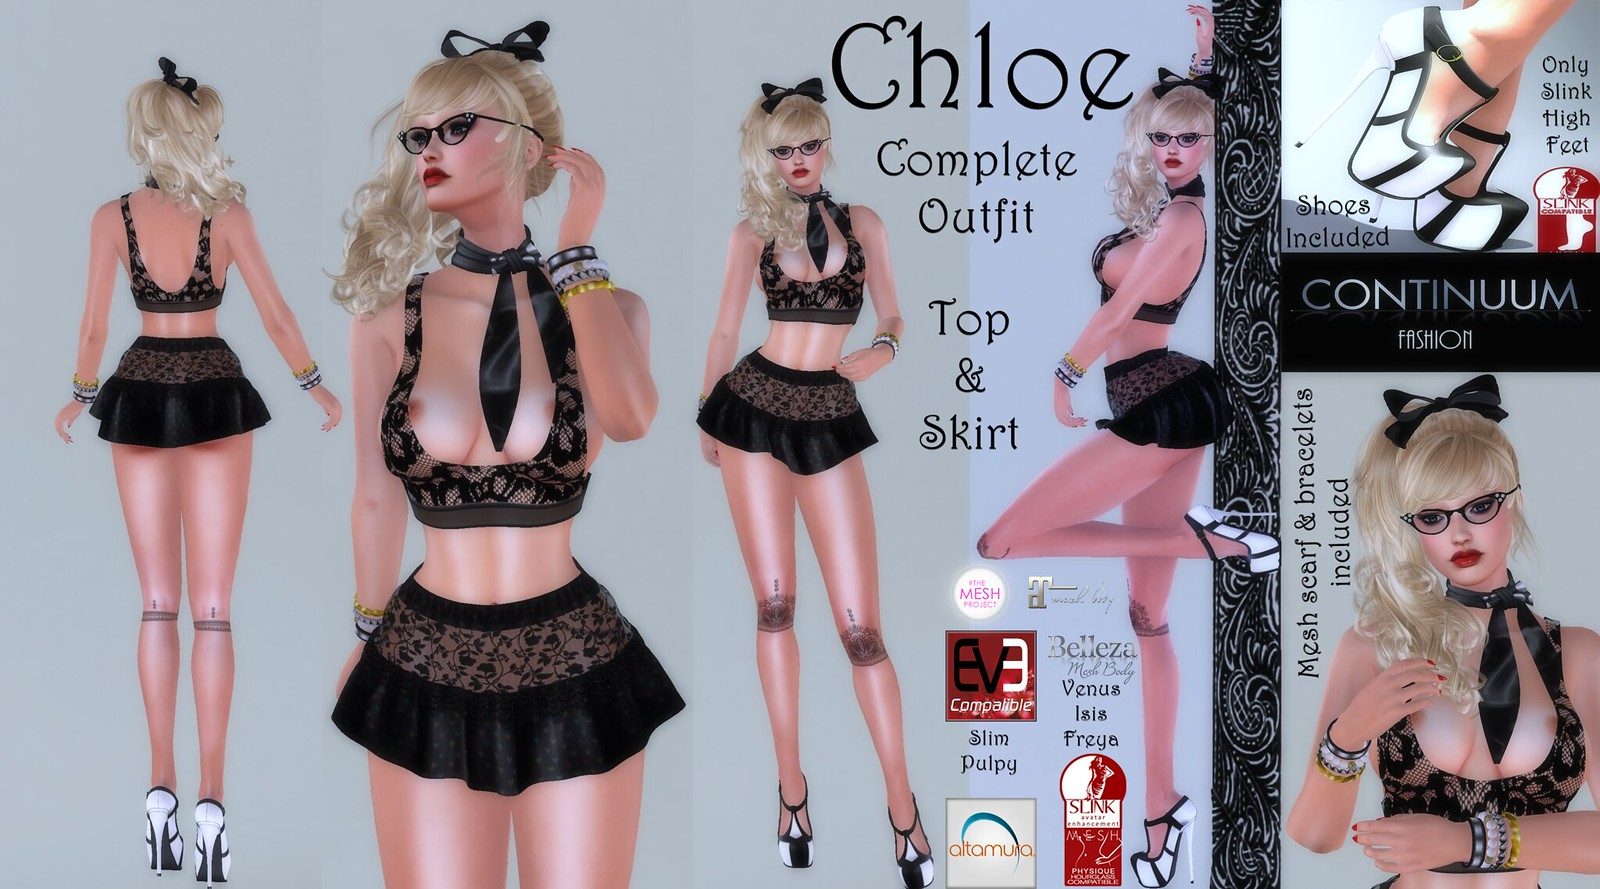 Continuum Chloe Black Outfit